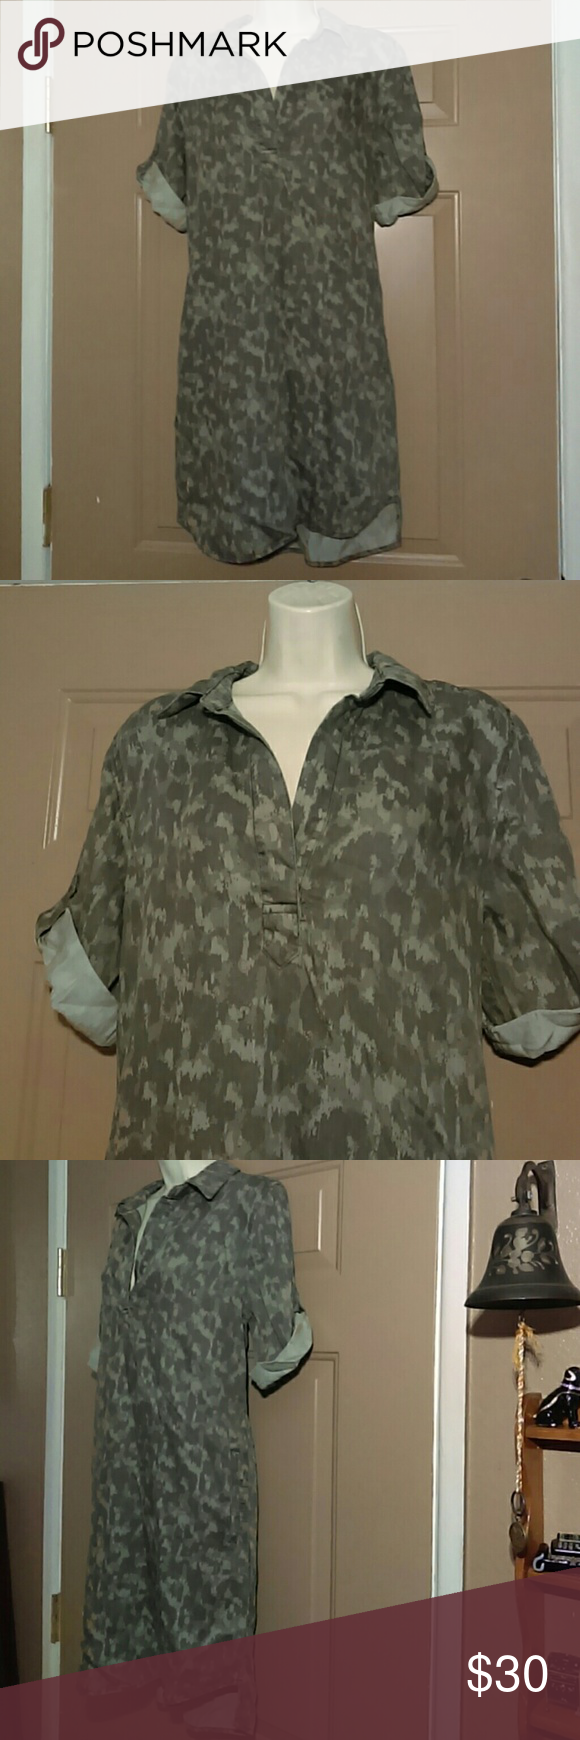 """NWT PHILOSOPHY SHIRT DRESS-SIZE MEDIUM -Brand New with Tags -Philosophy Shirt Dress -Size Medium -100% Tencel Lyocell -Kinda has a Camo look -Has collar with a V-neck -Sleeves are rolled up and secured with strap and button -Armpit to armpit measures 20"""" -Shoulder to bottom hem measures 35"""" in front and 37"""" in back -Hidden pockets on each side of dress -Nice looking dress and very comfortable Philosophy Dresses"""